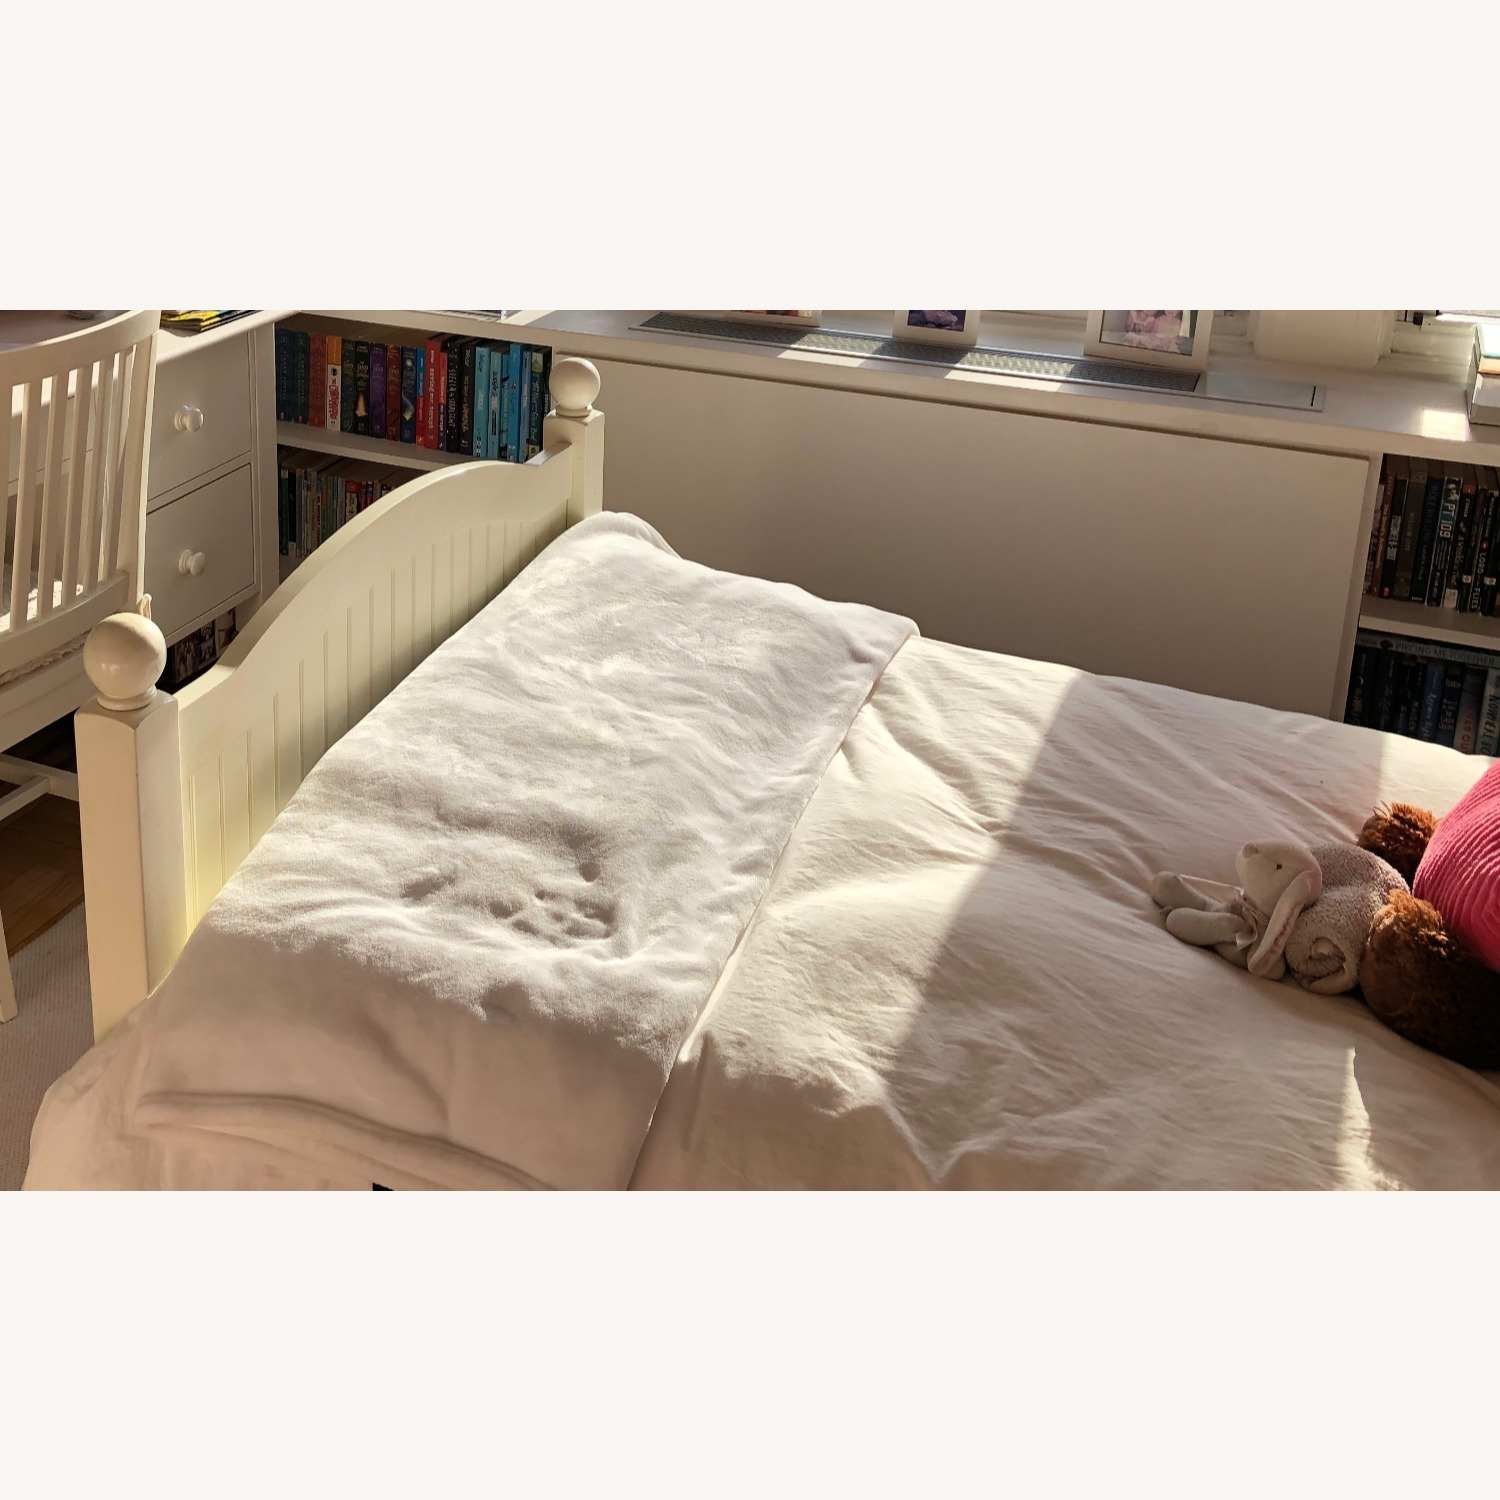 Pottery Barn Kids Catalina Bed, Twin, Simply White - image-3